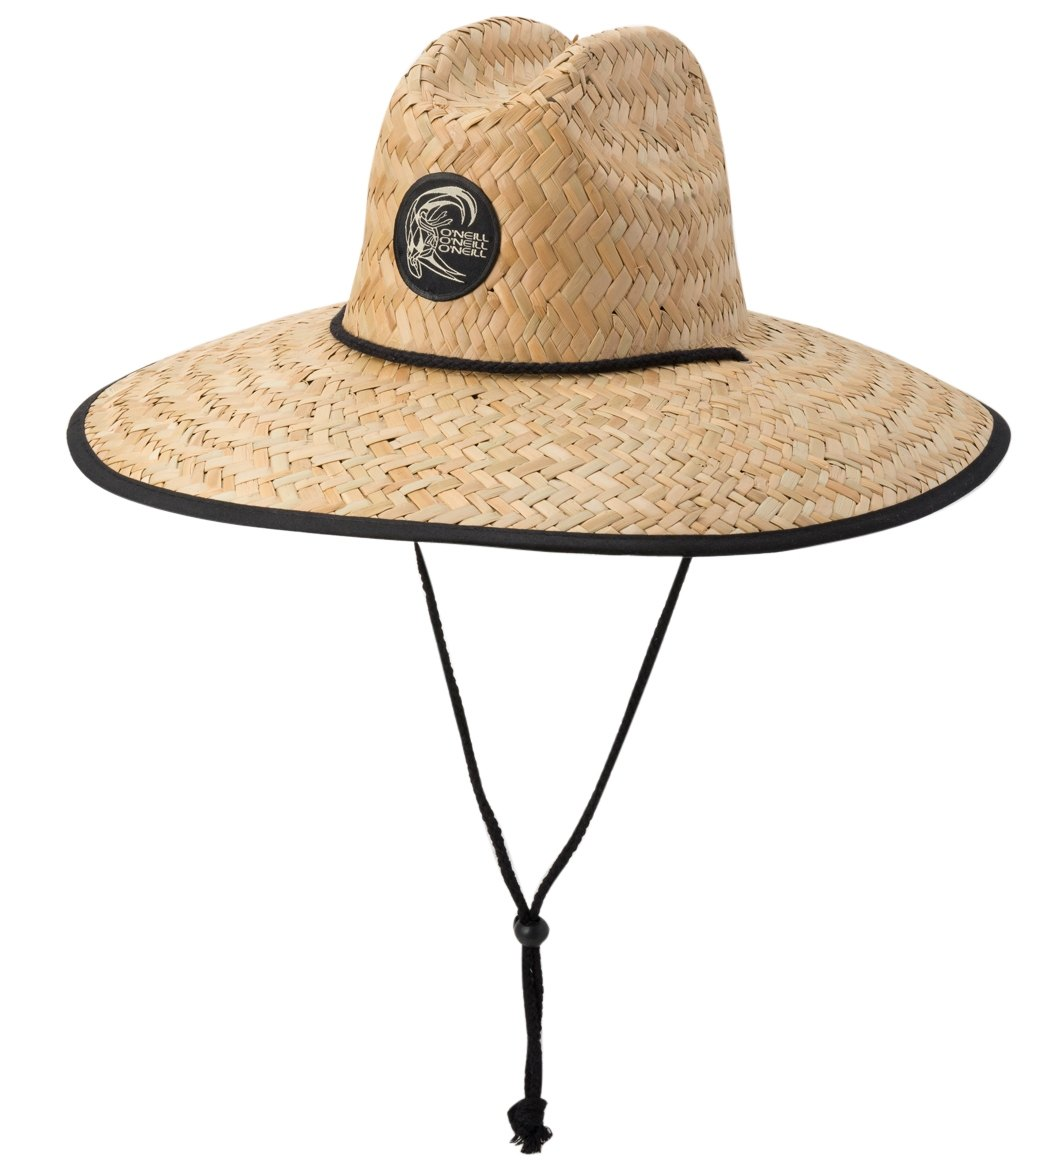 Straw hat the hull truth boating and fishing forum for Fishing straw hat